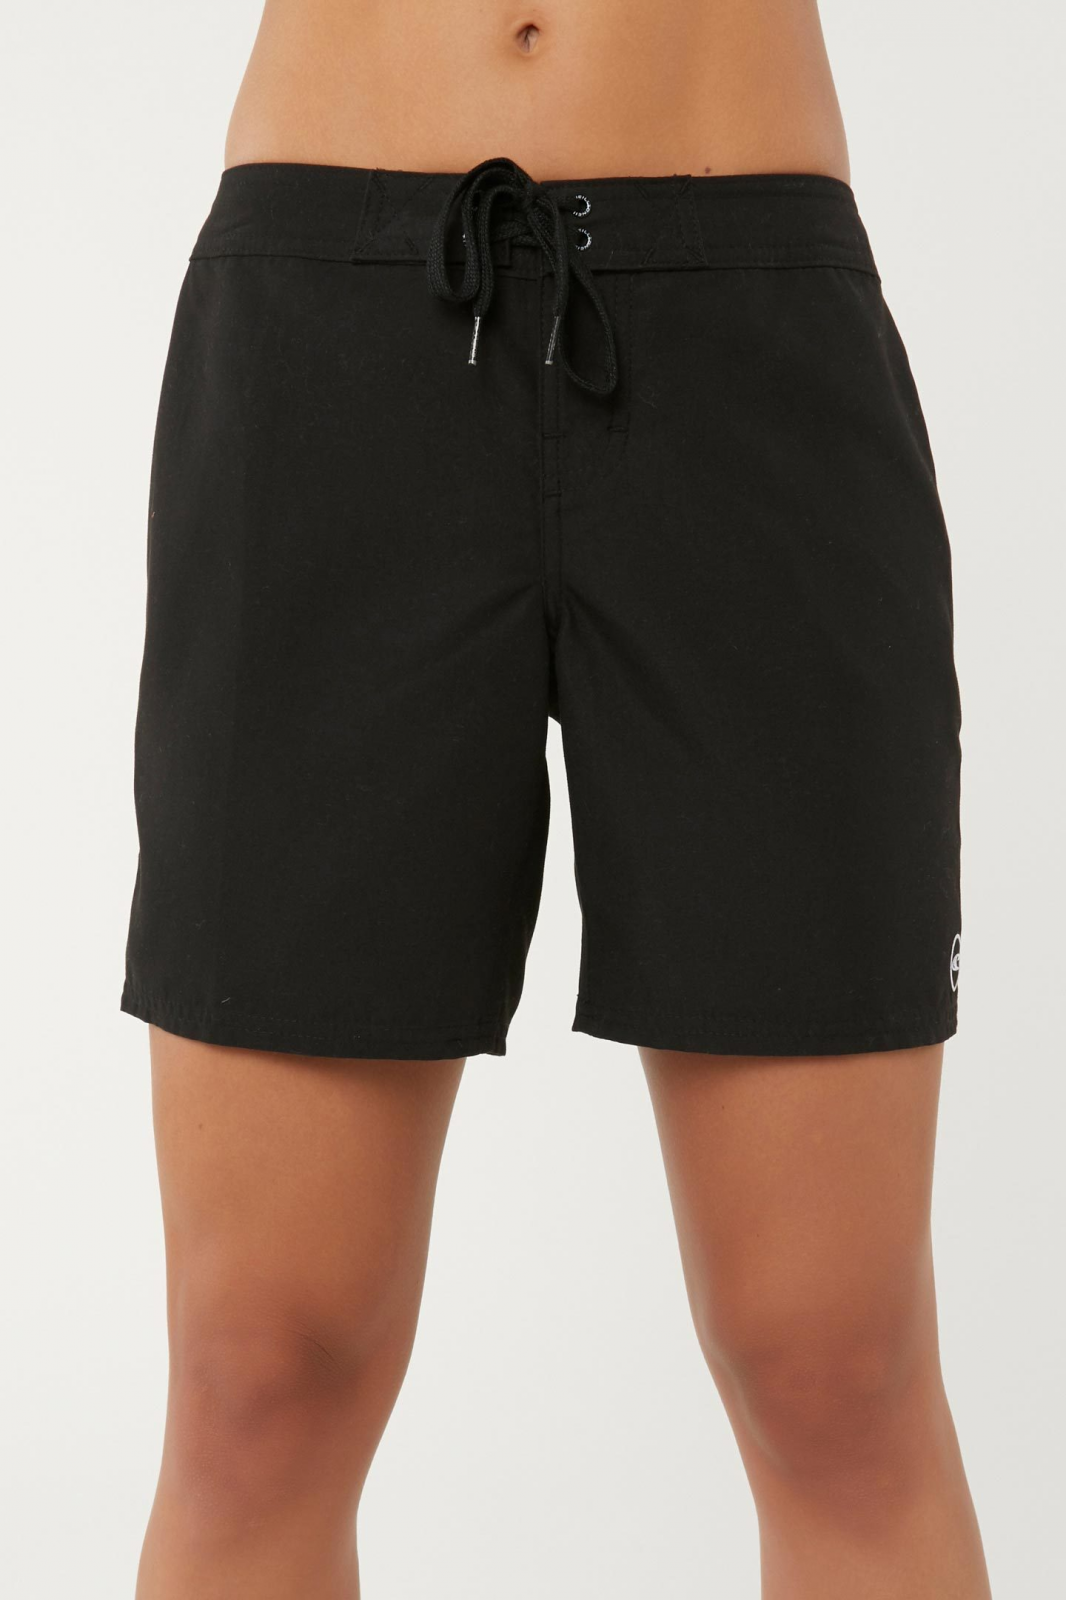 ONEILL SALT WATER 7 BOARDSHORT